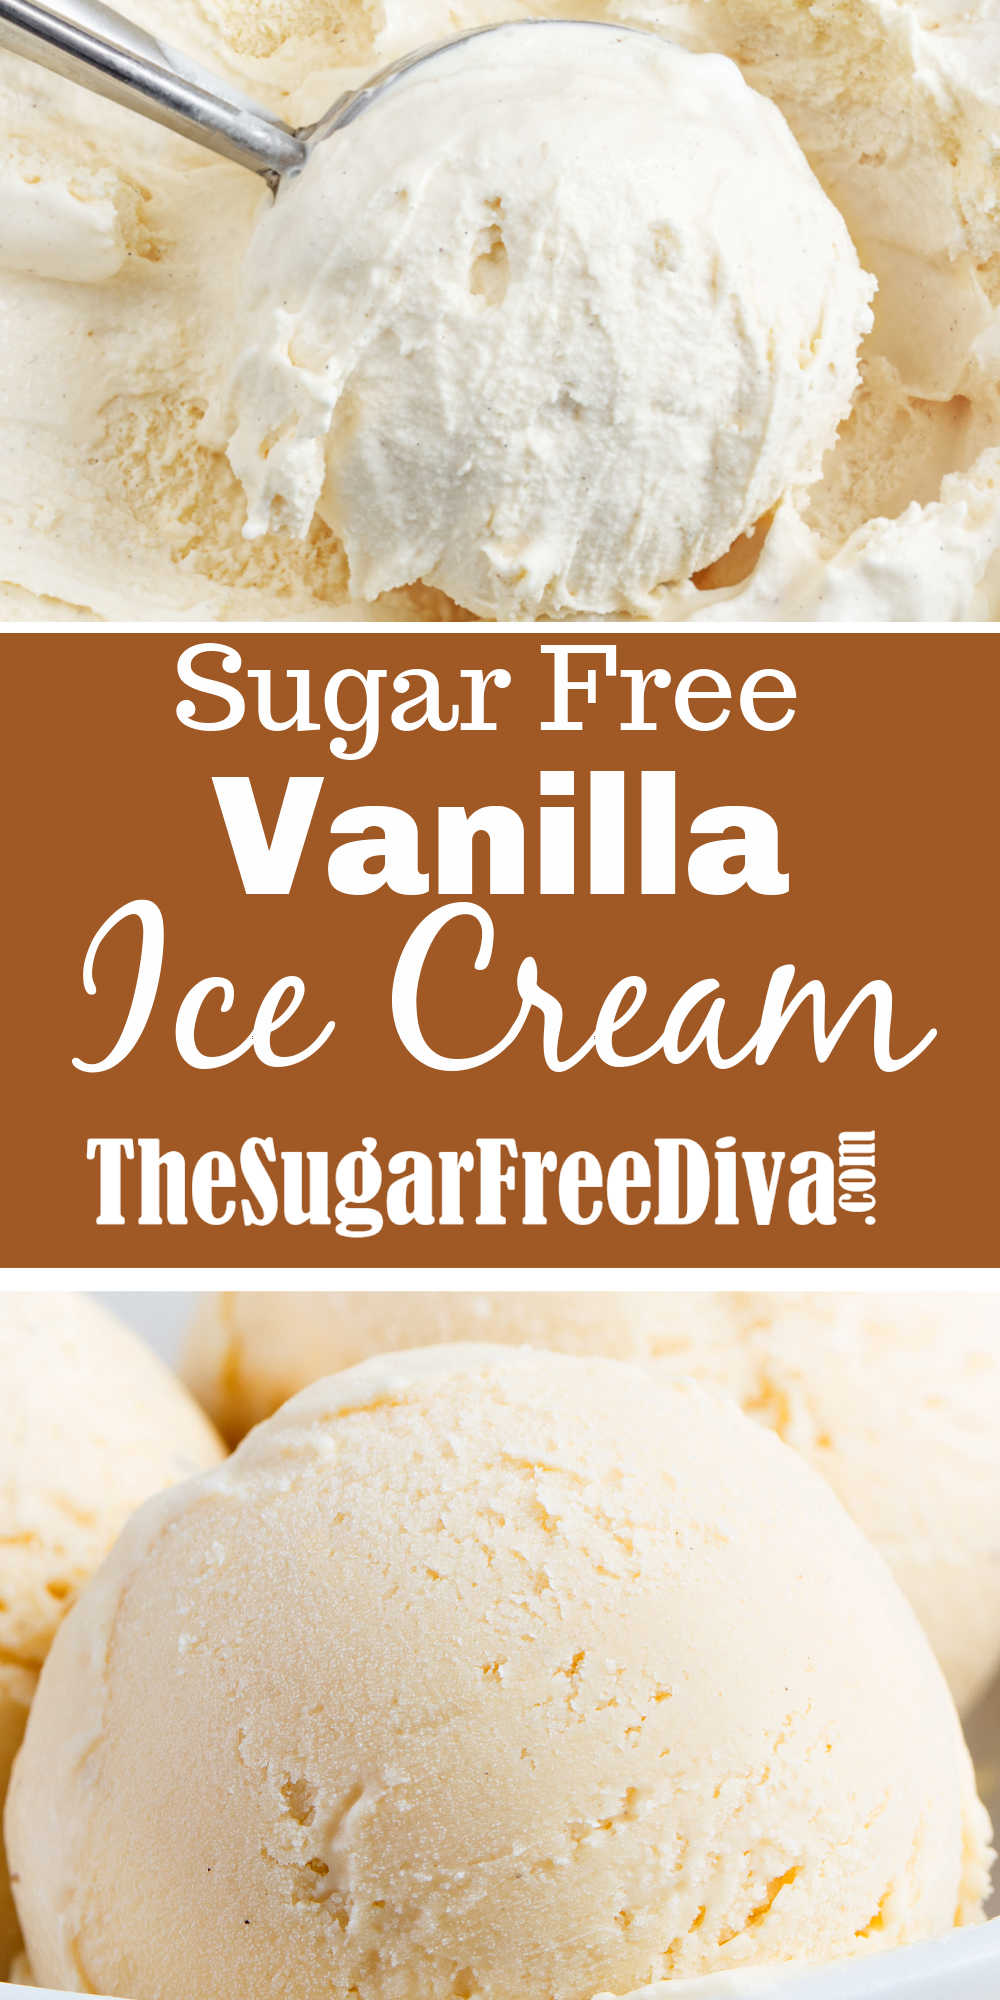 Sugar Free Vanilla Ice Cream